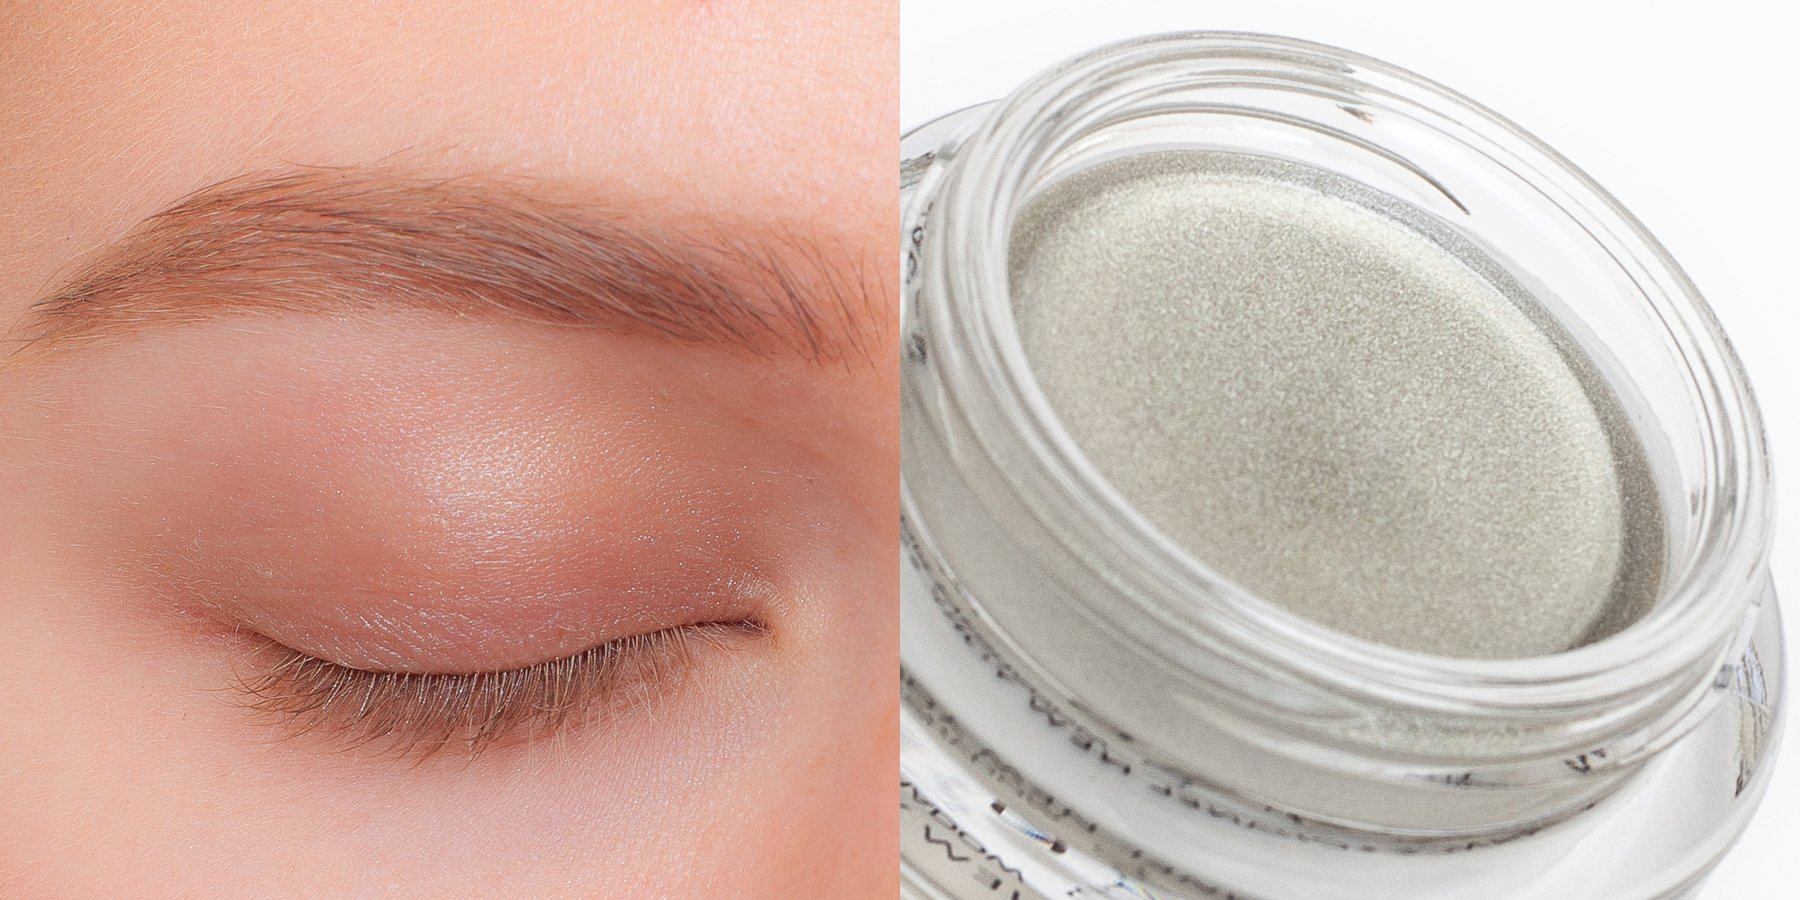 chanel top coat eyeshadow lunaire